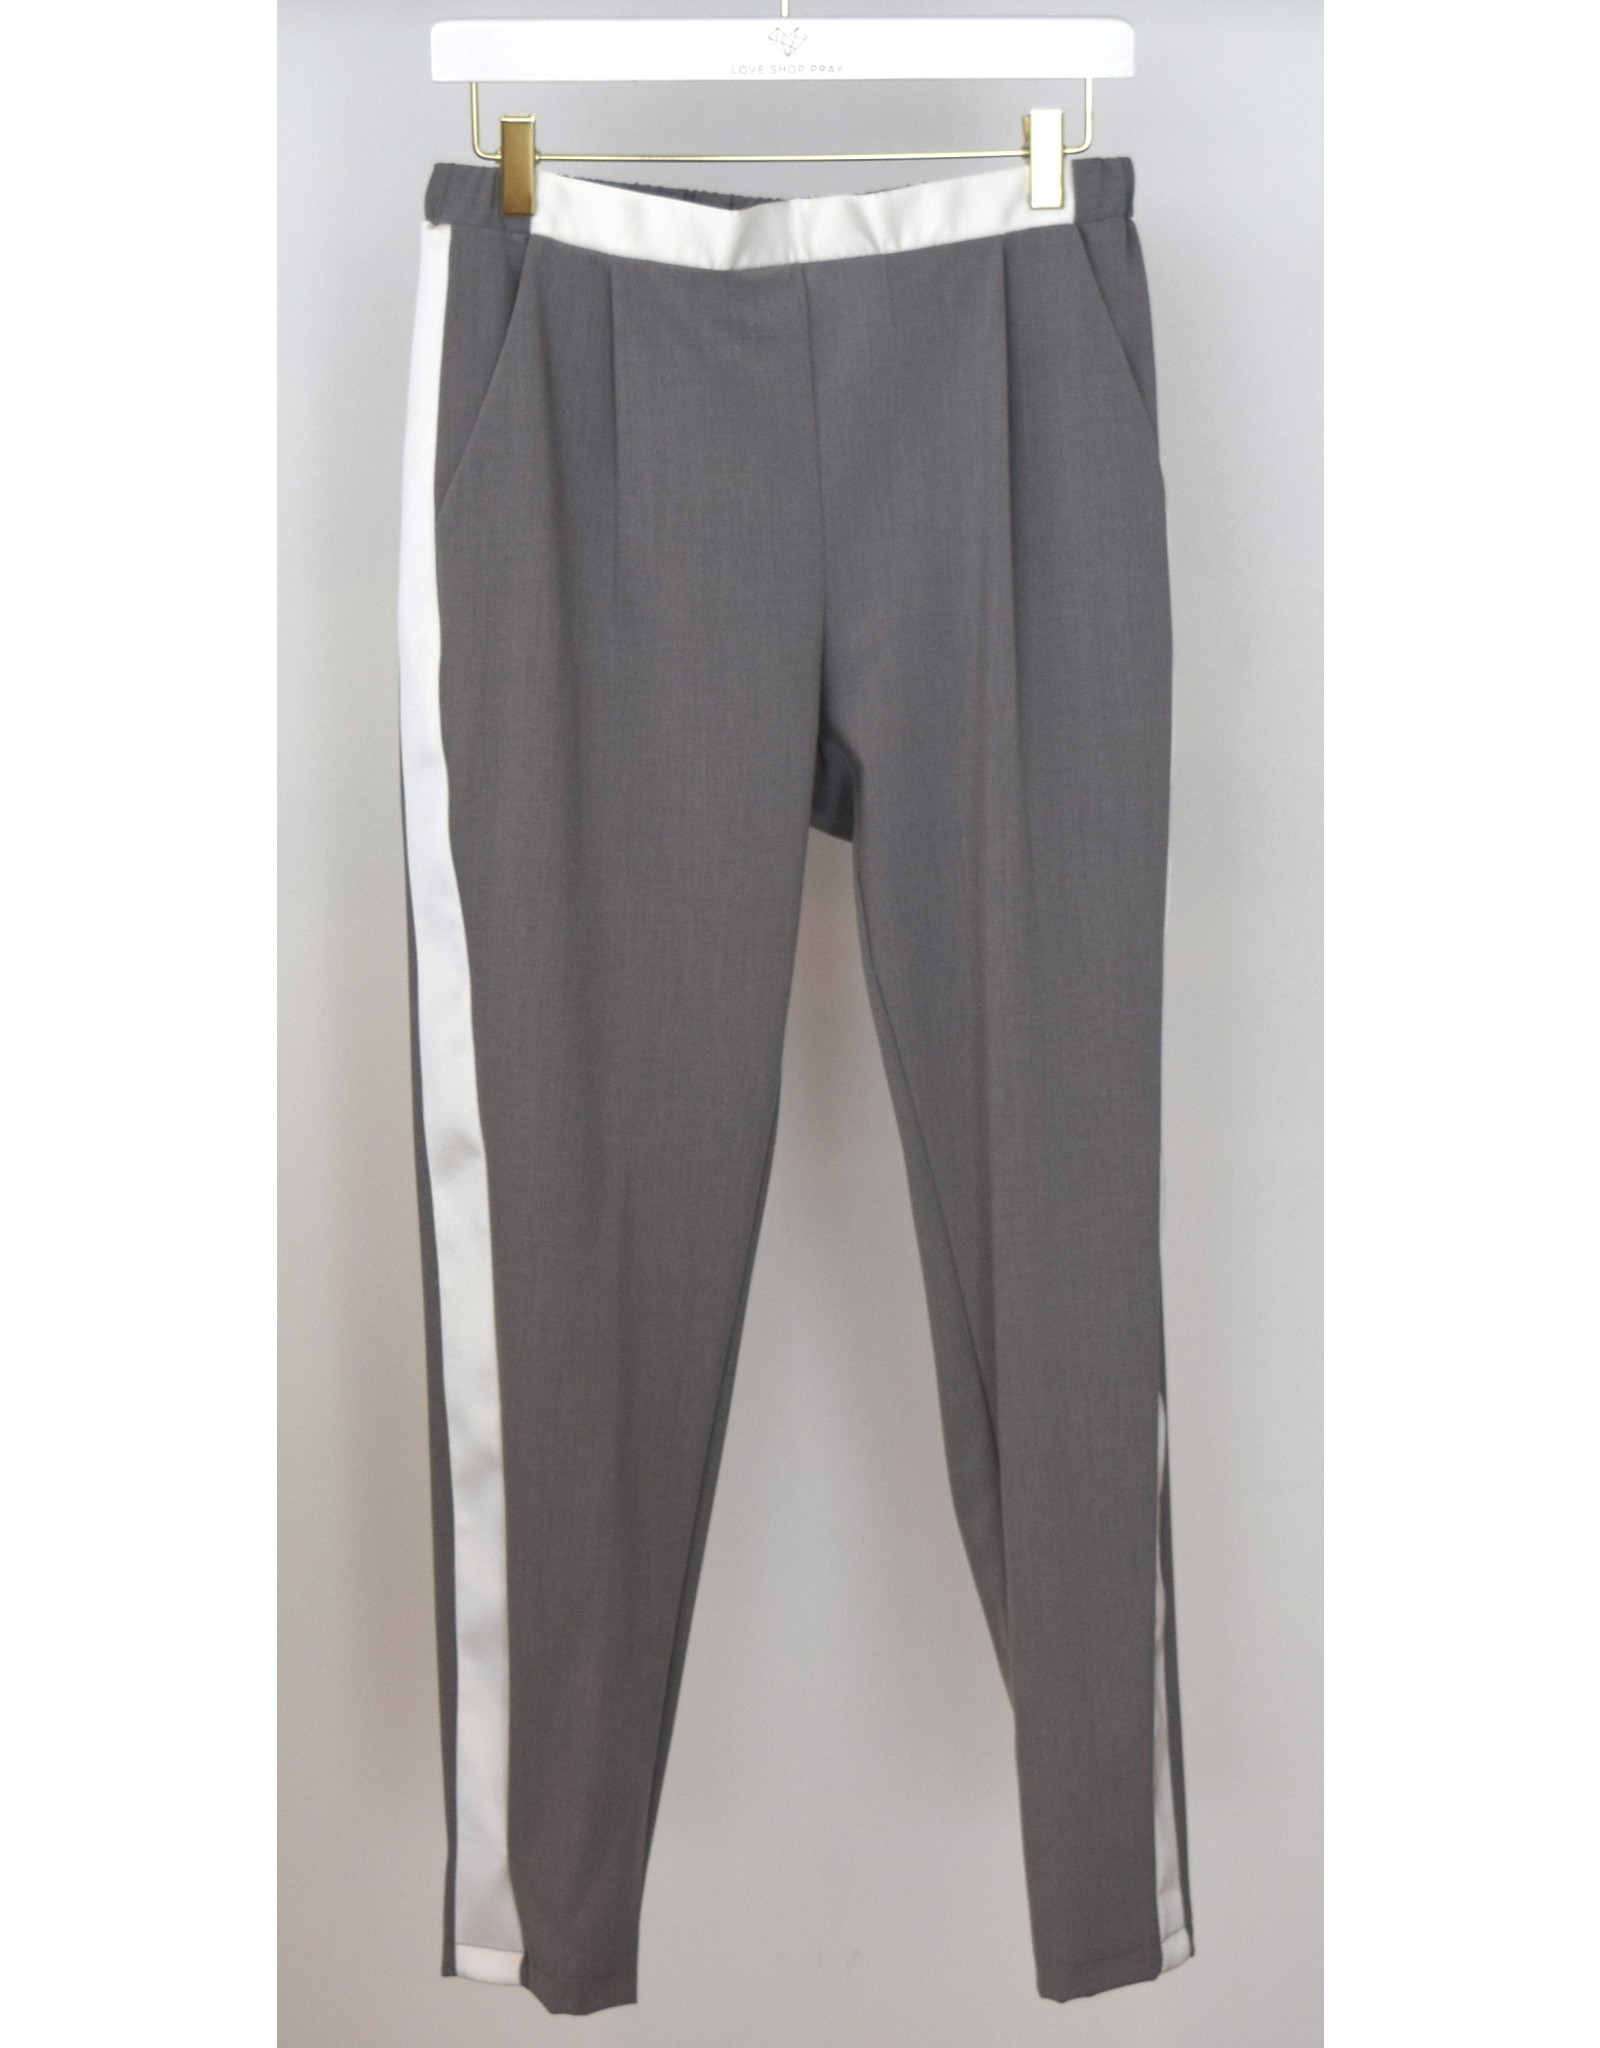 Imperial/Dixie Elastic waist side band pants